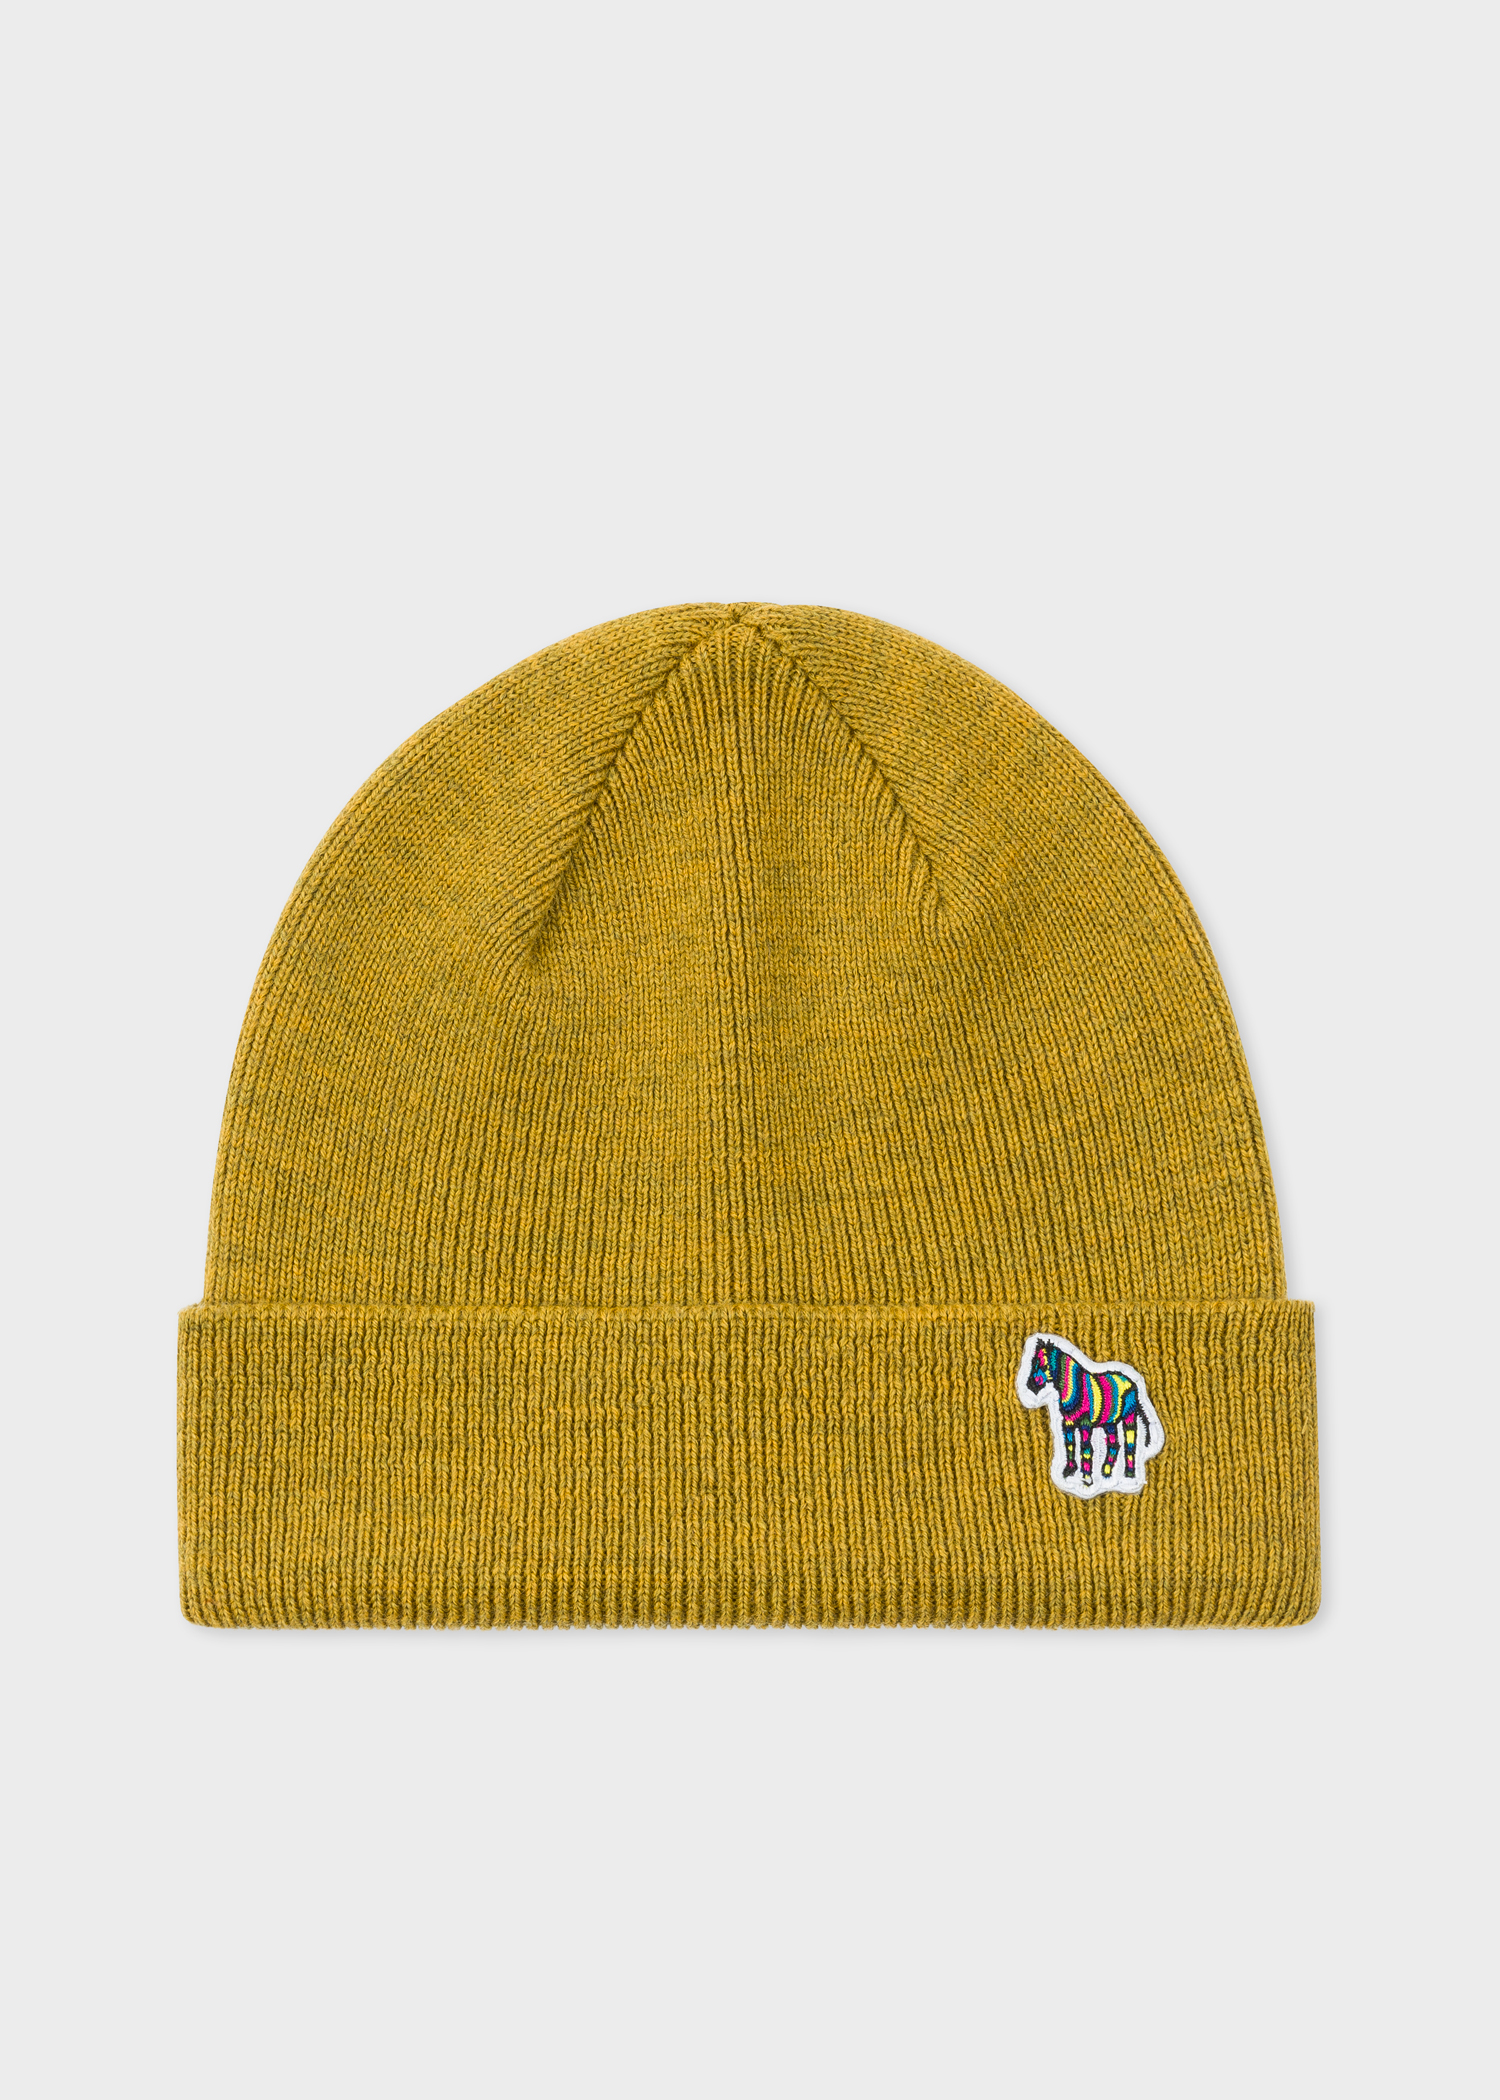 Front view - Men s Mustard  Zebra  Logo Ribbed Lambswool Beanie Hat Paul  Smith 3ab0a5cbdc7